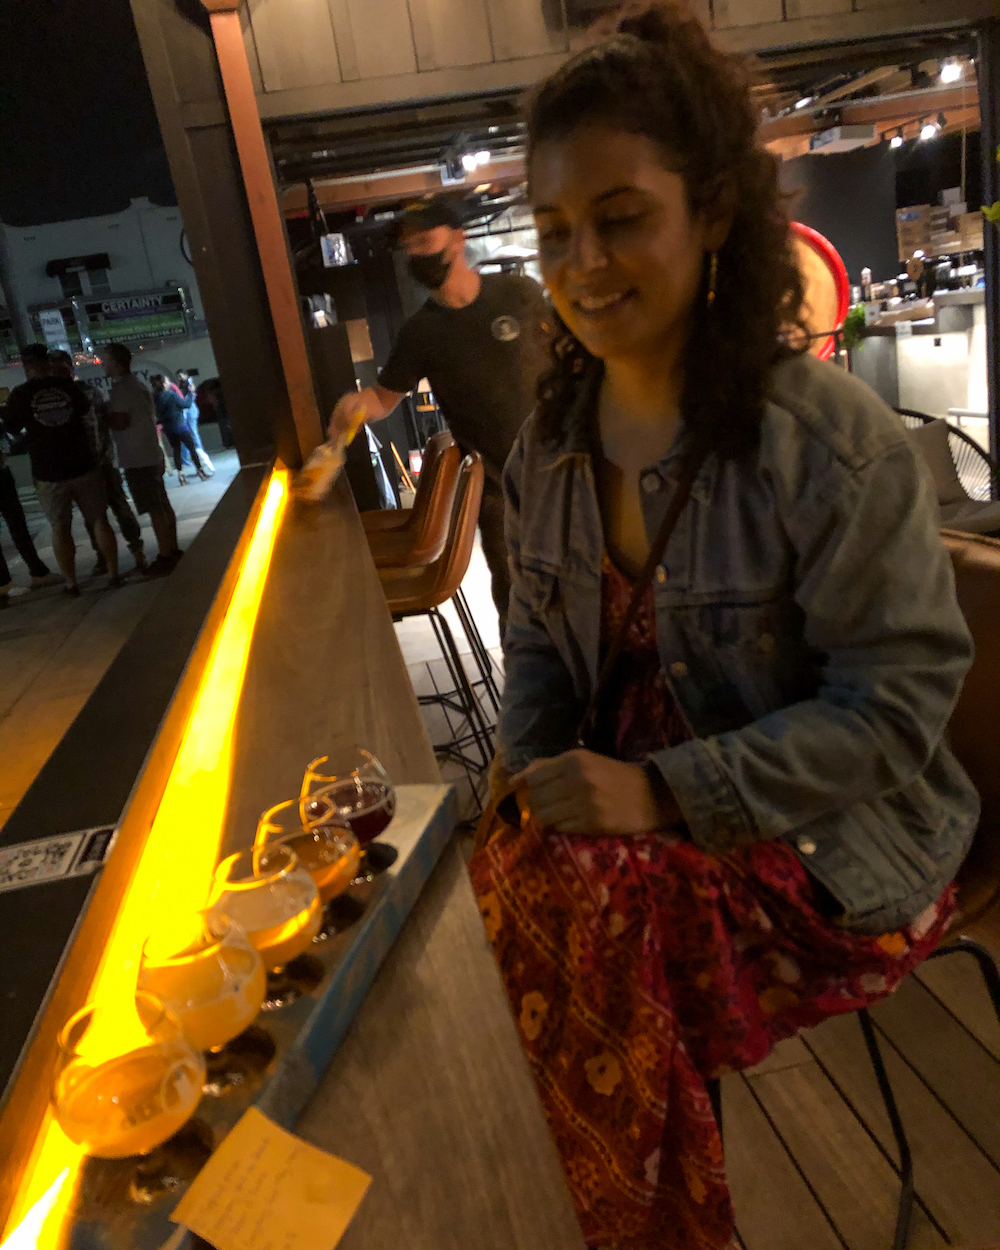 woman drinking pure project flight carlsbad breweries can diego county